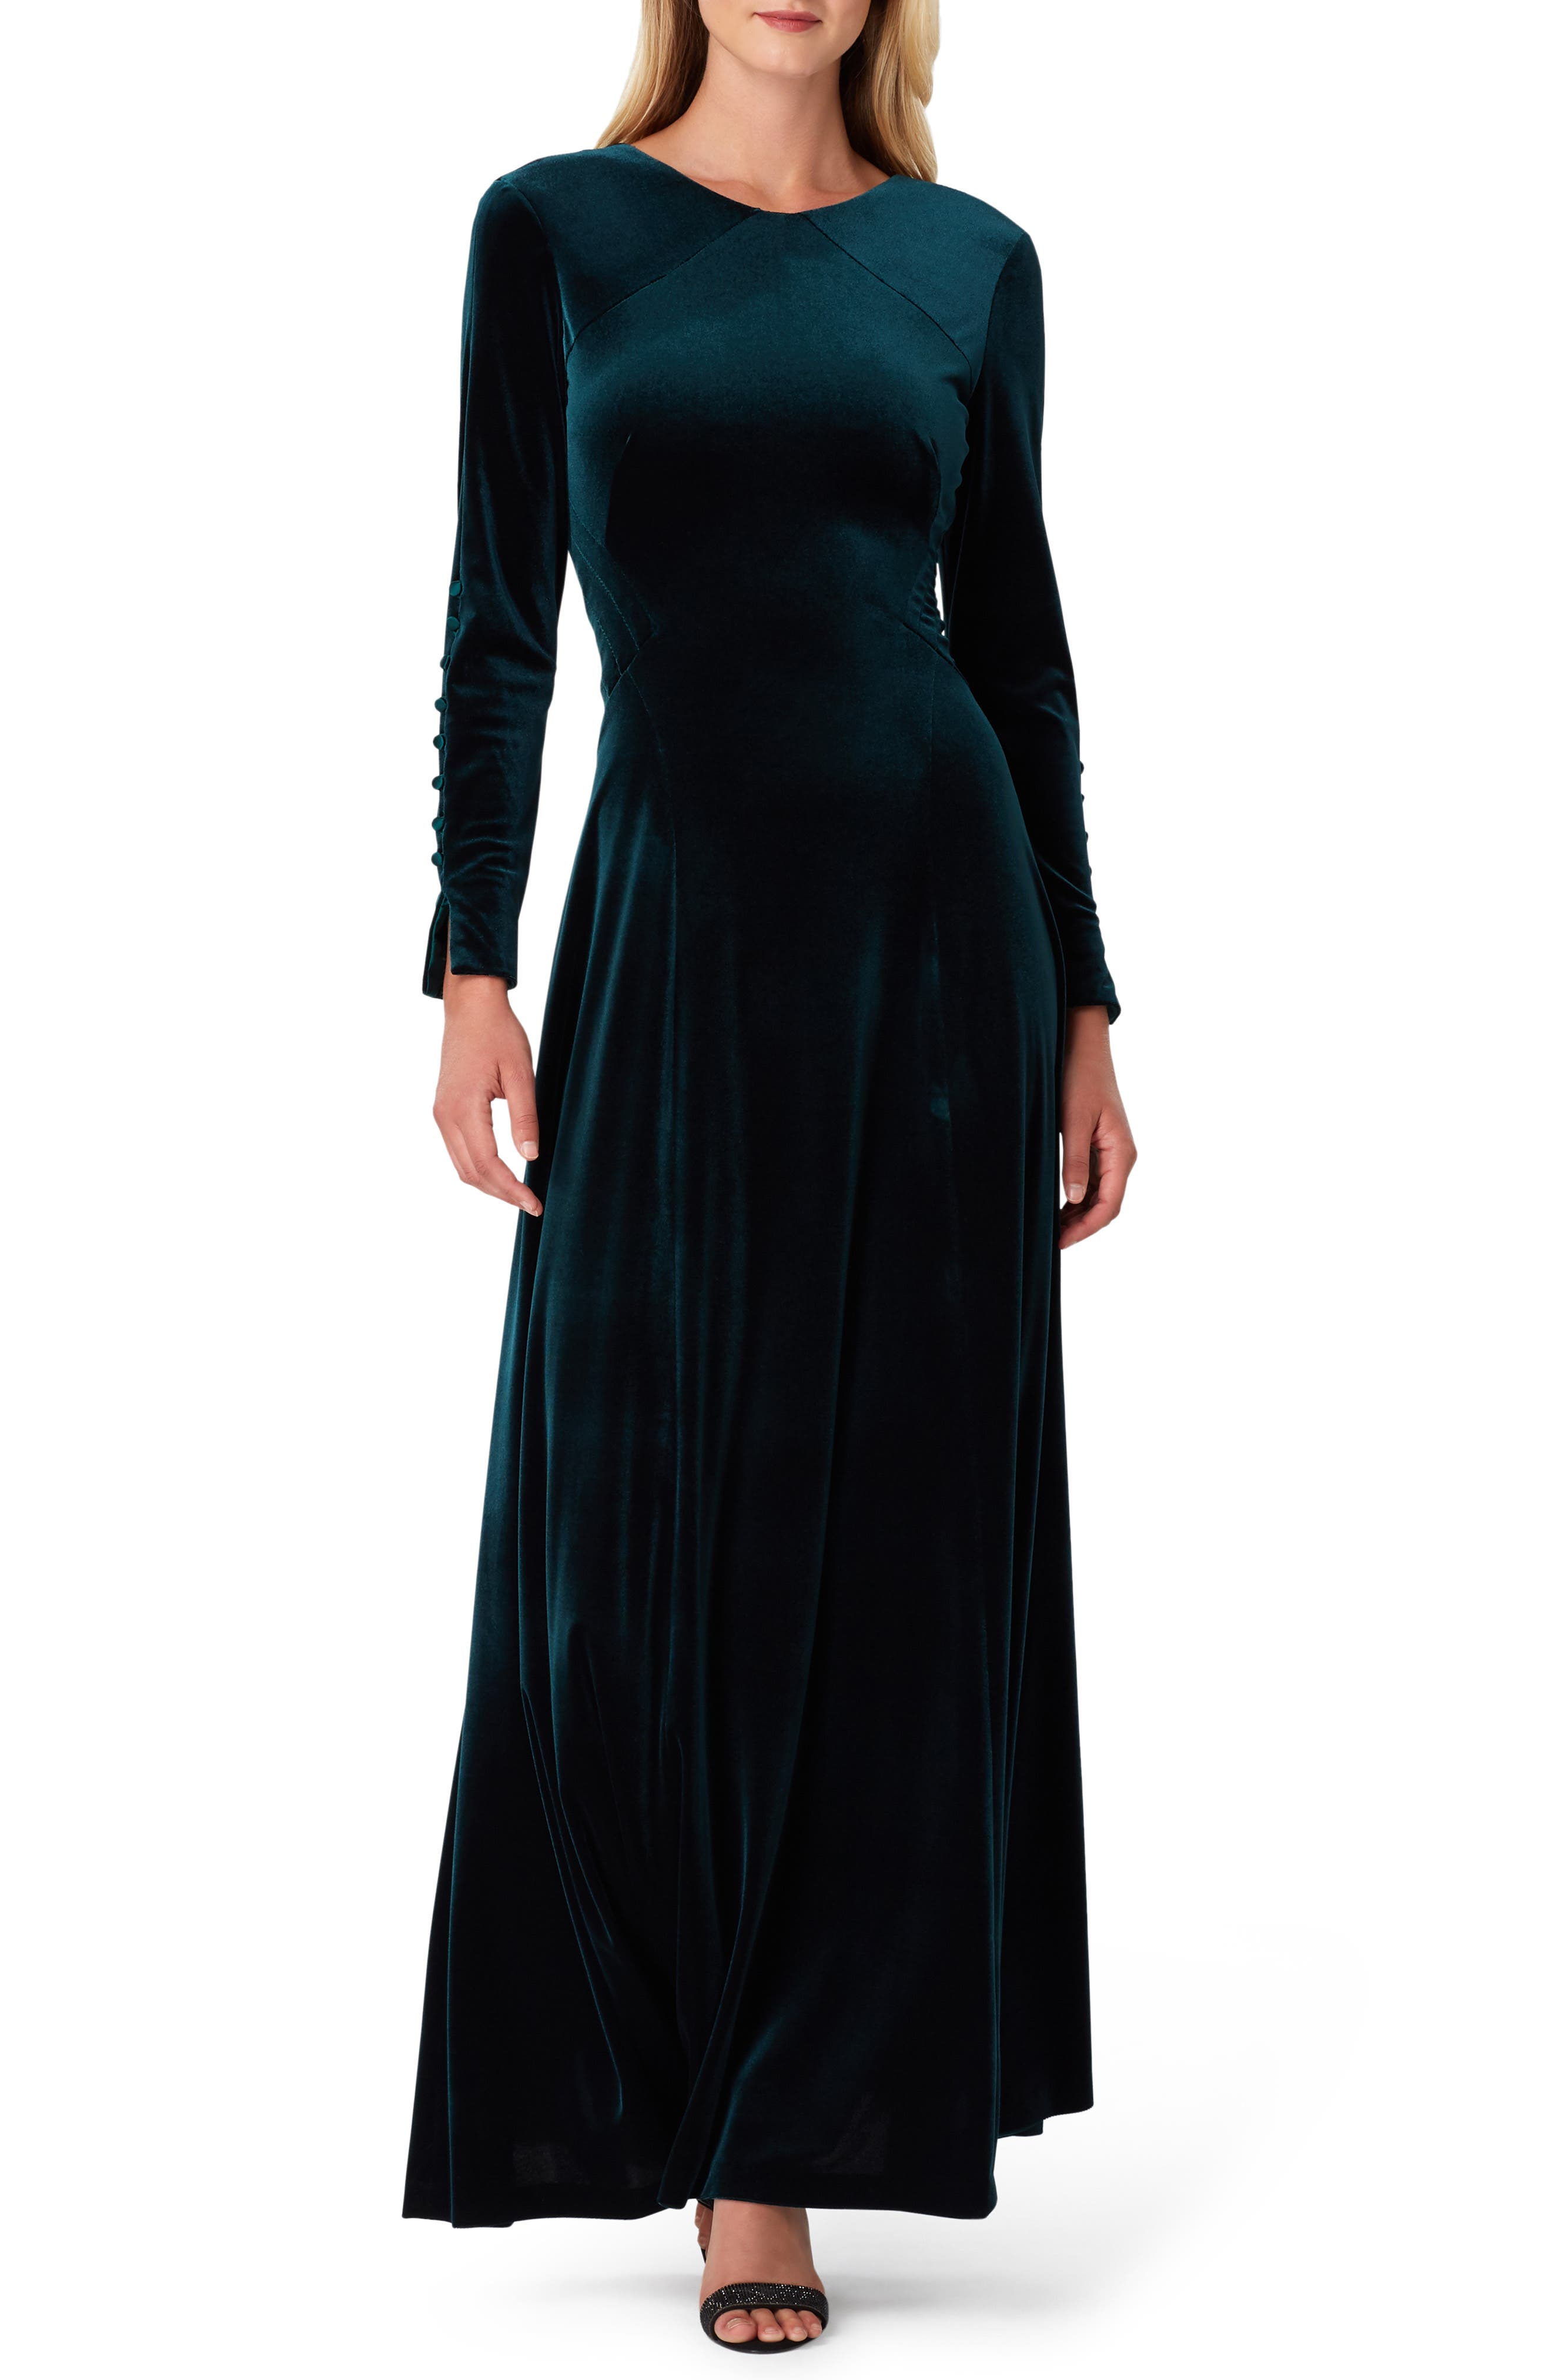 1930s Style Clothing and Fashion Womens Tahari Long Sleeve Stretch Velvet Gown $218.00 AT vintagedancer.com